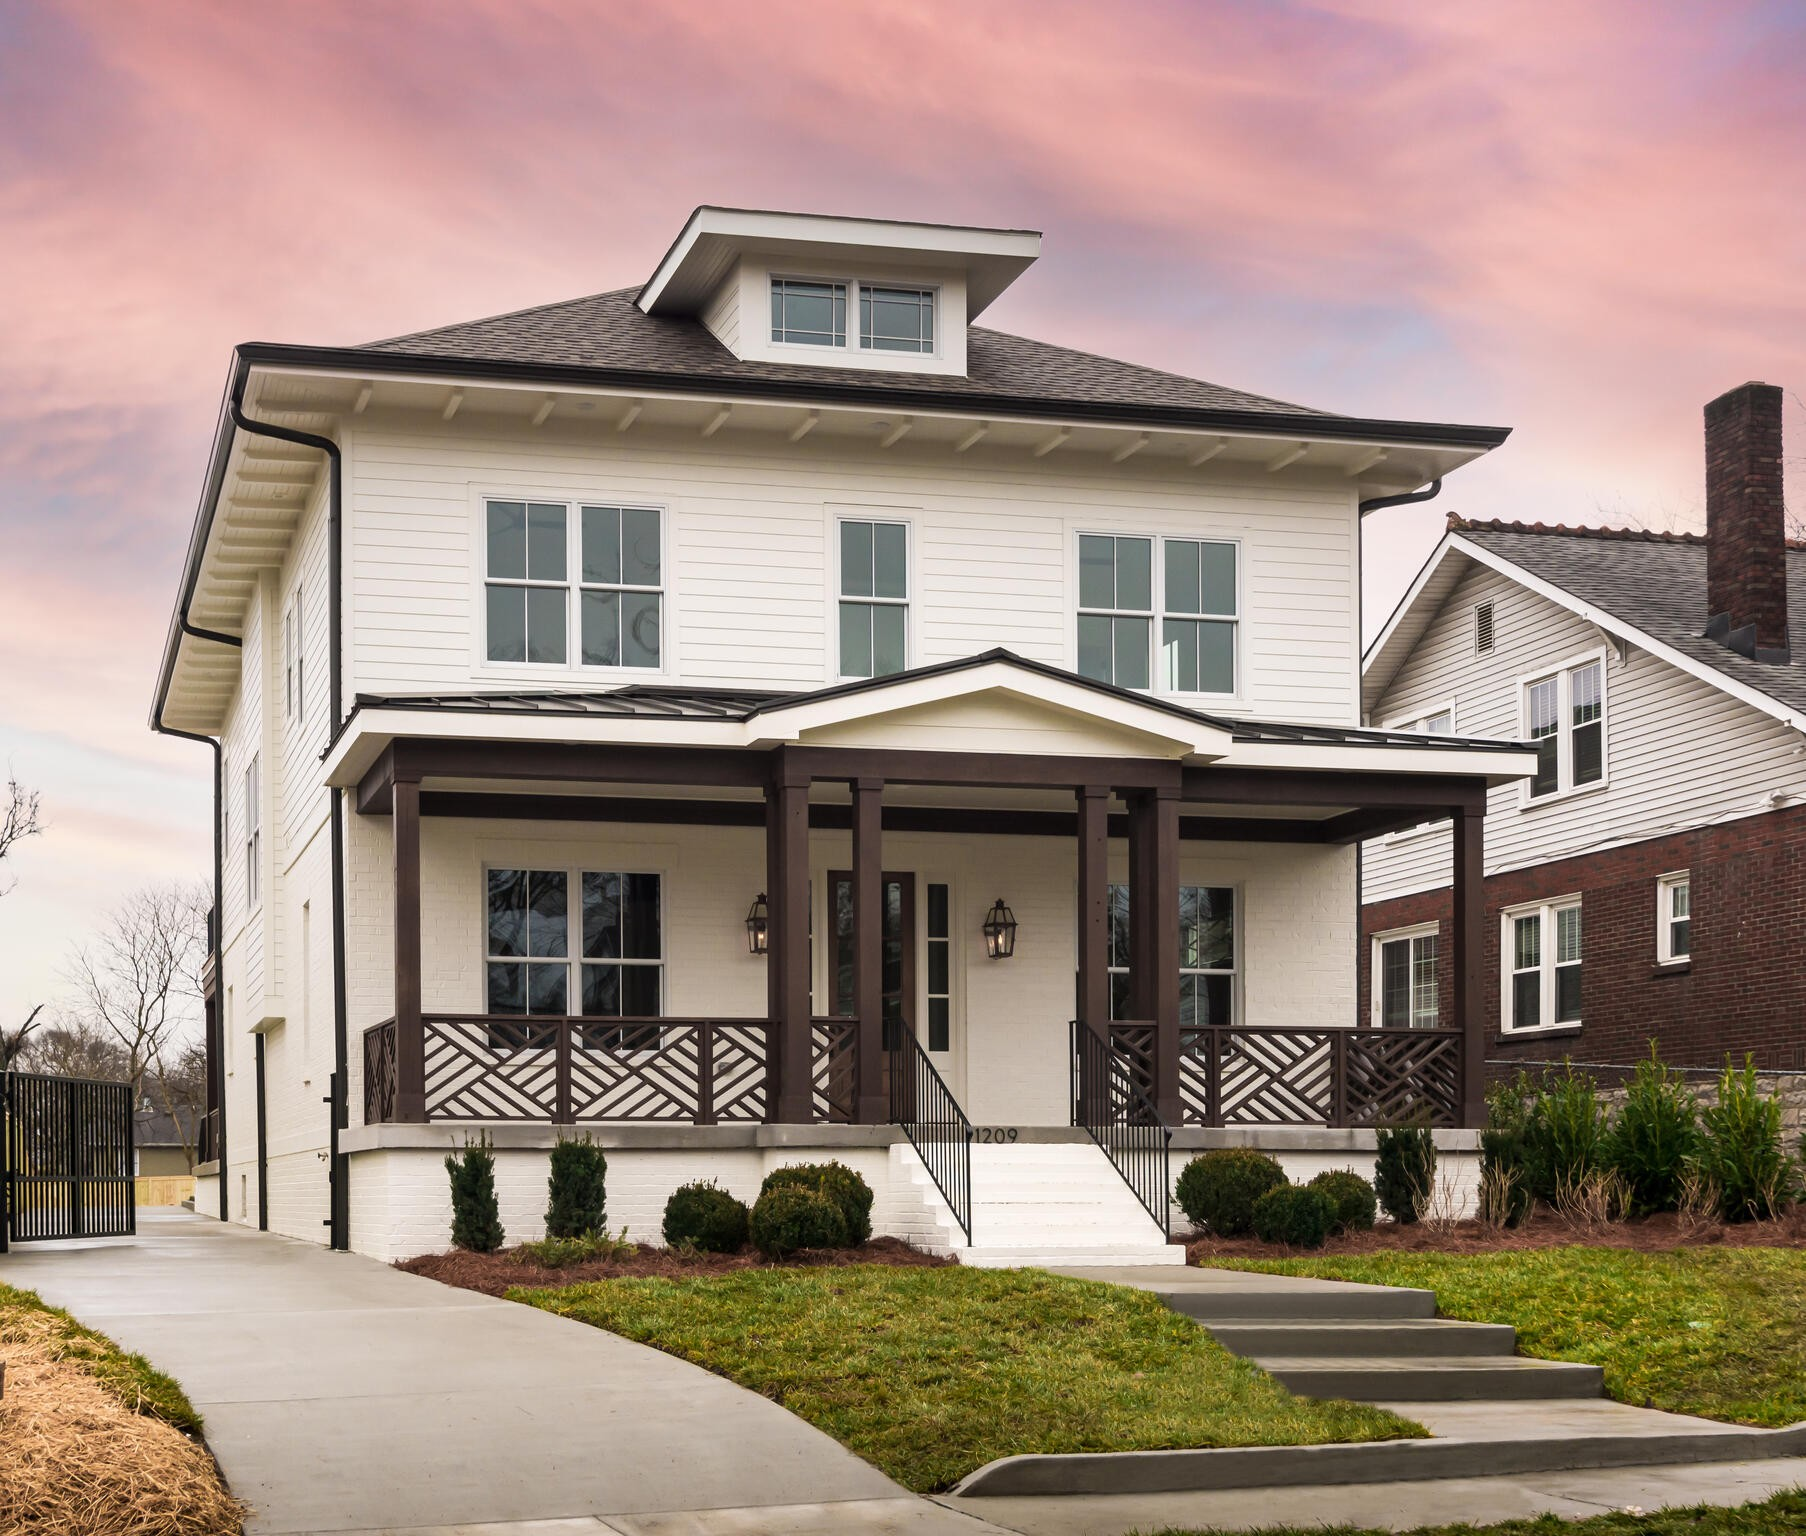 1209 Sweetbriar Ave Property Photo - Nashville, TN real estate listing